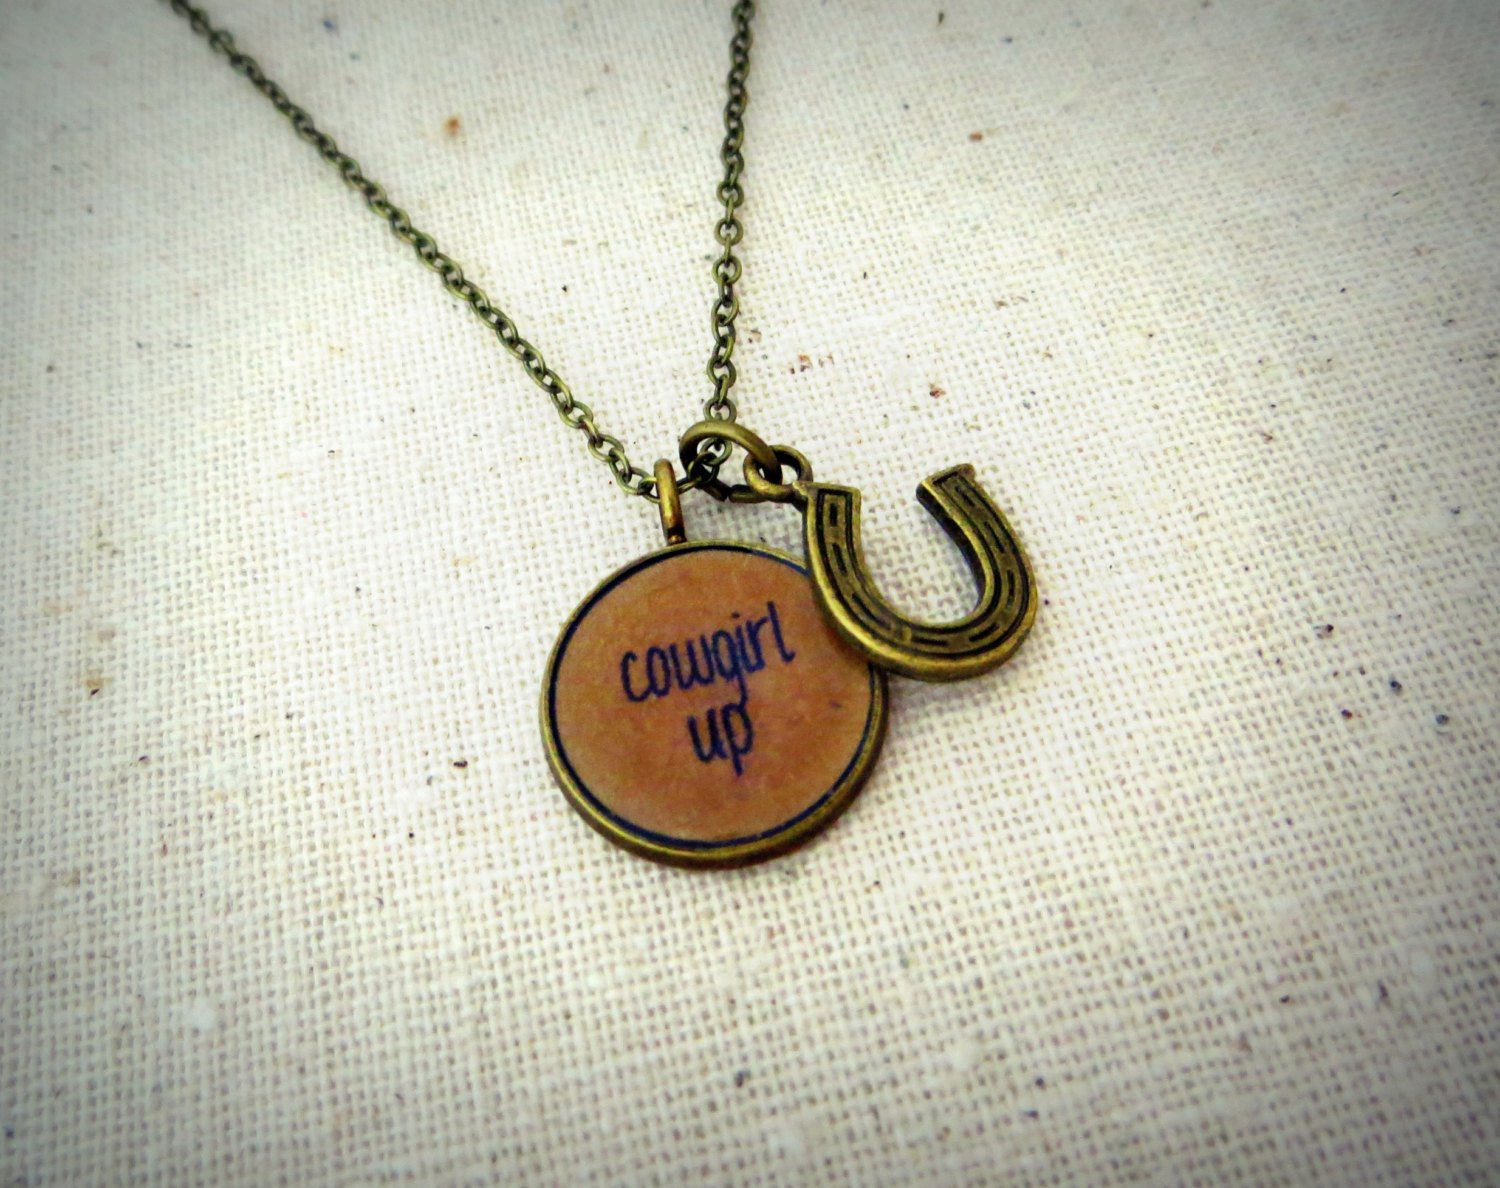 Cowgirl Up Inspirational Quote Pendant Necklace With Horseshoe Charm (Brass)